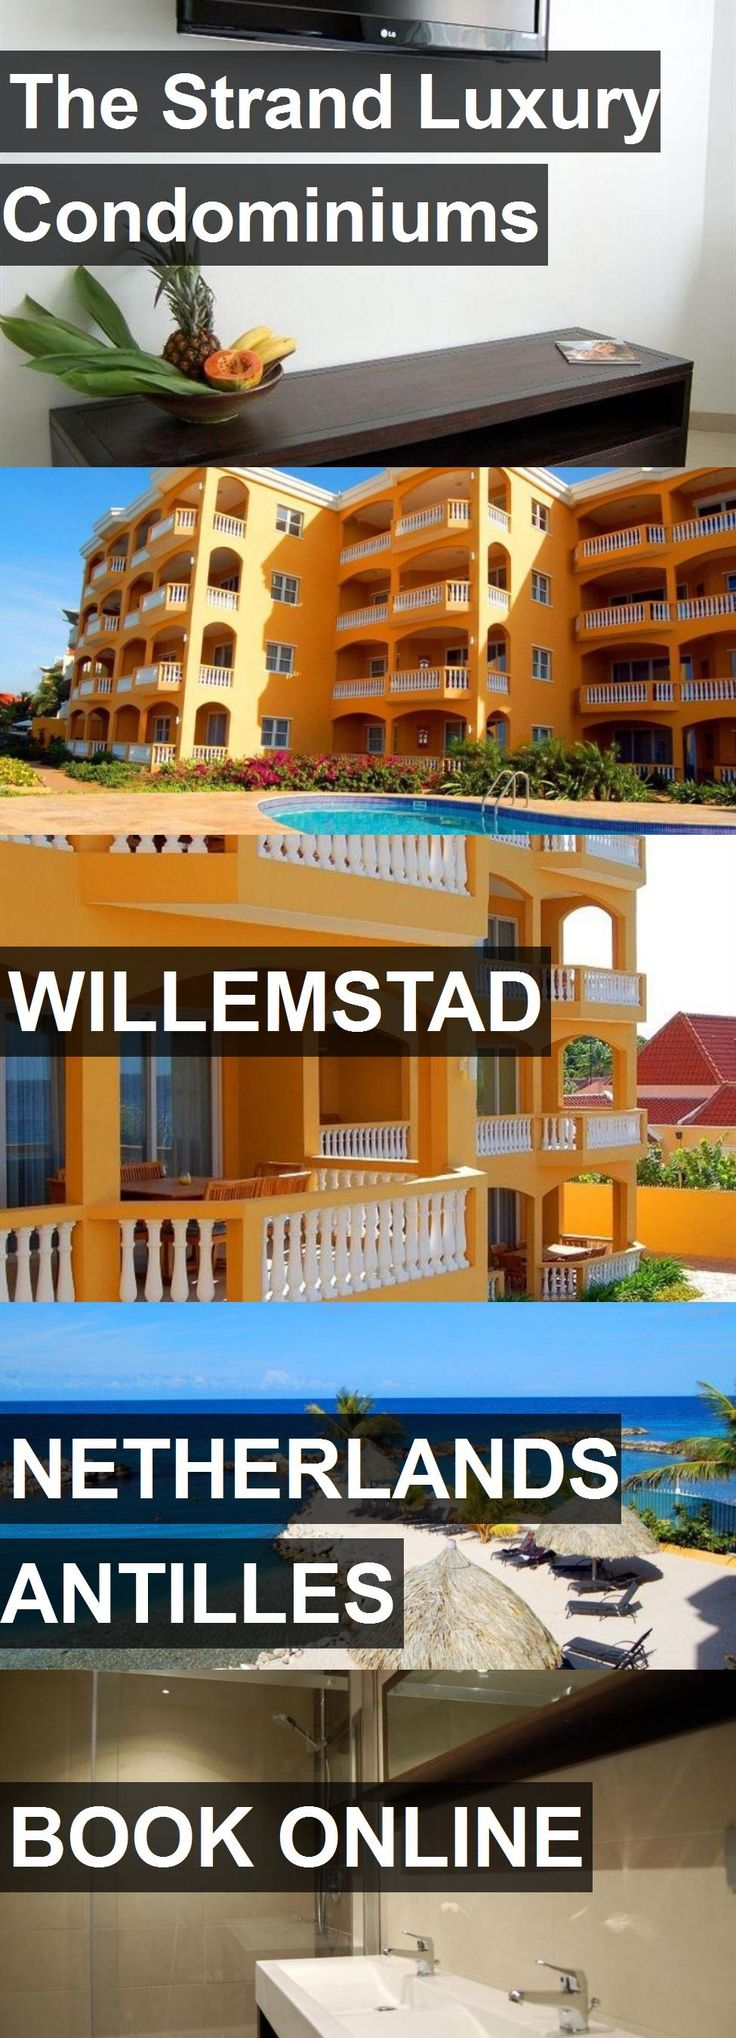 Hotel The Strand Luxury Condominiums in Willemstad, Netherlands Antilles. For more information, photos, reviews and best prices please follow the link. #NetherlandsAntilles #Willemstad #hotel #travel #vacation